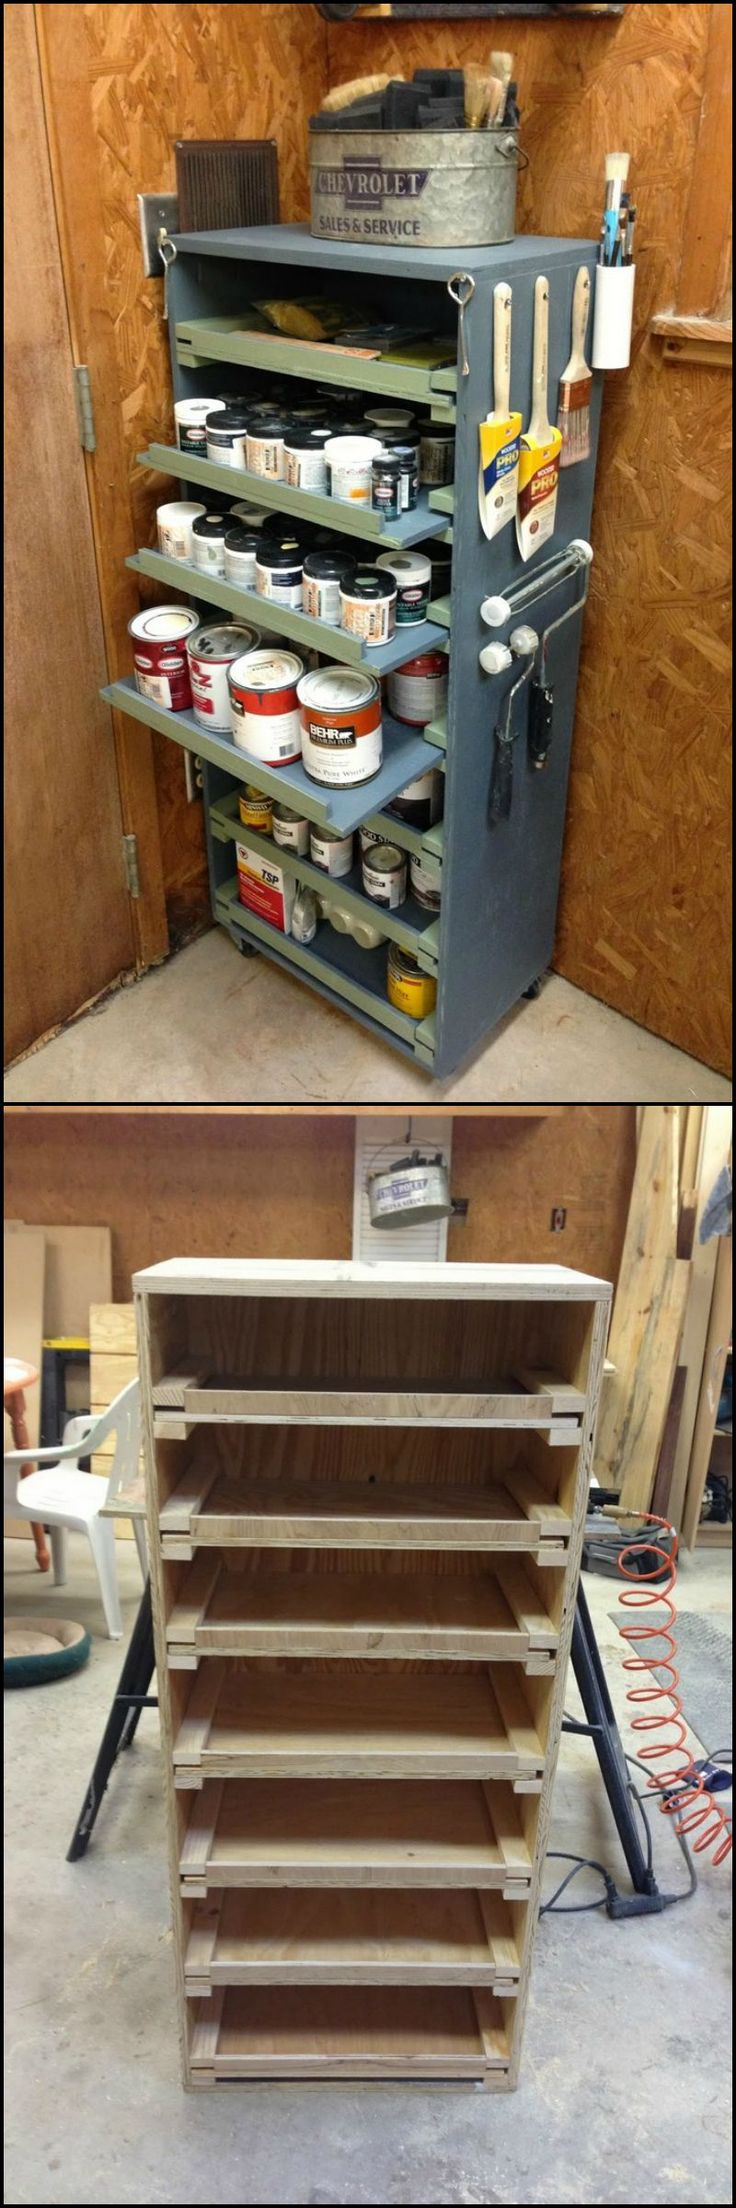 How To Build A Paint Storage Cabinet Here's a great project to organize and add storage to your workshop! It's great because it provides easy access to all your paint cans. You can sort them according to brand, type, colour or size.